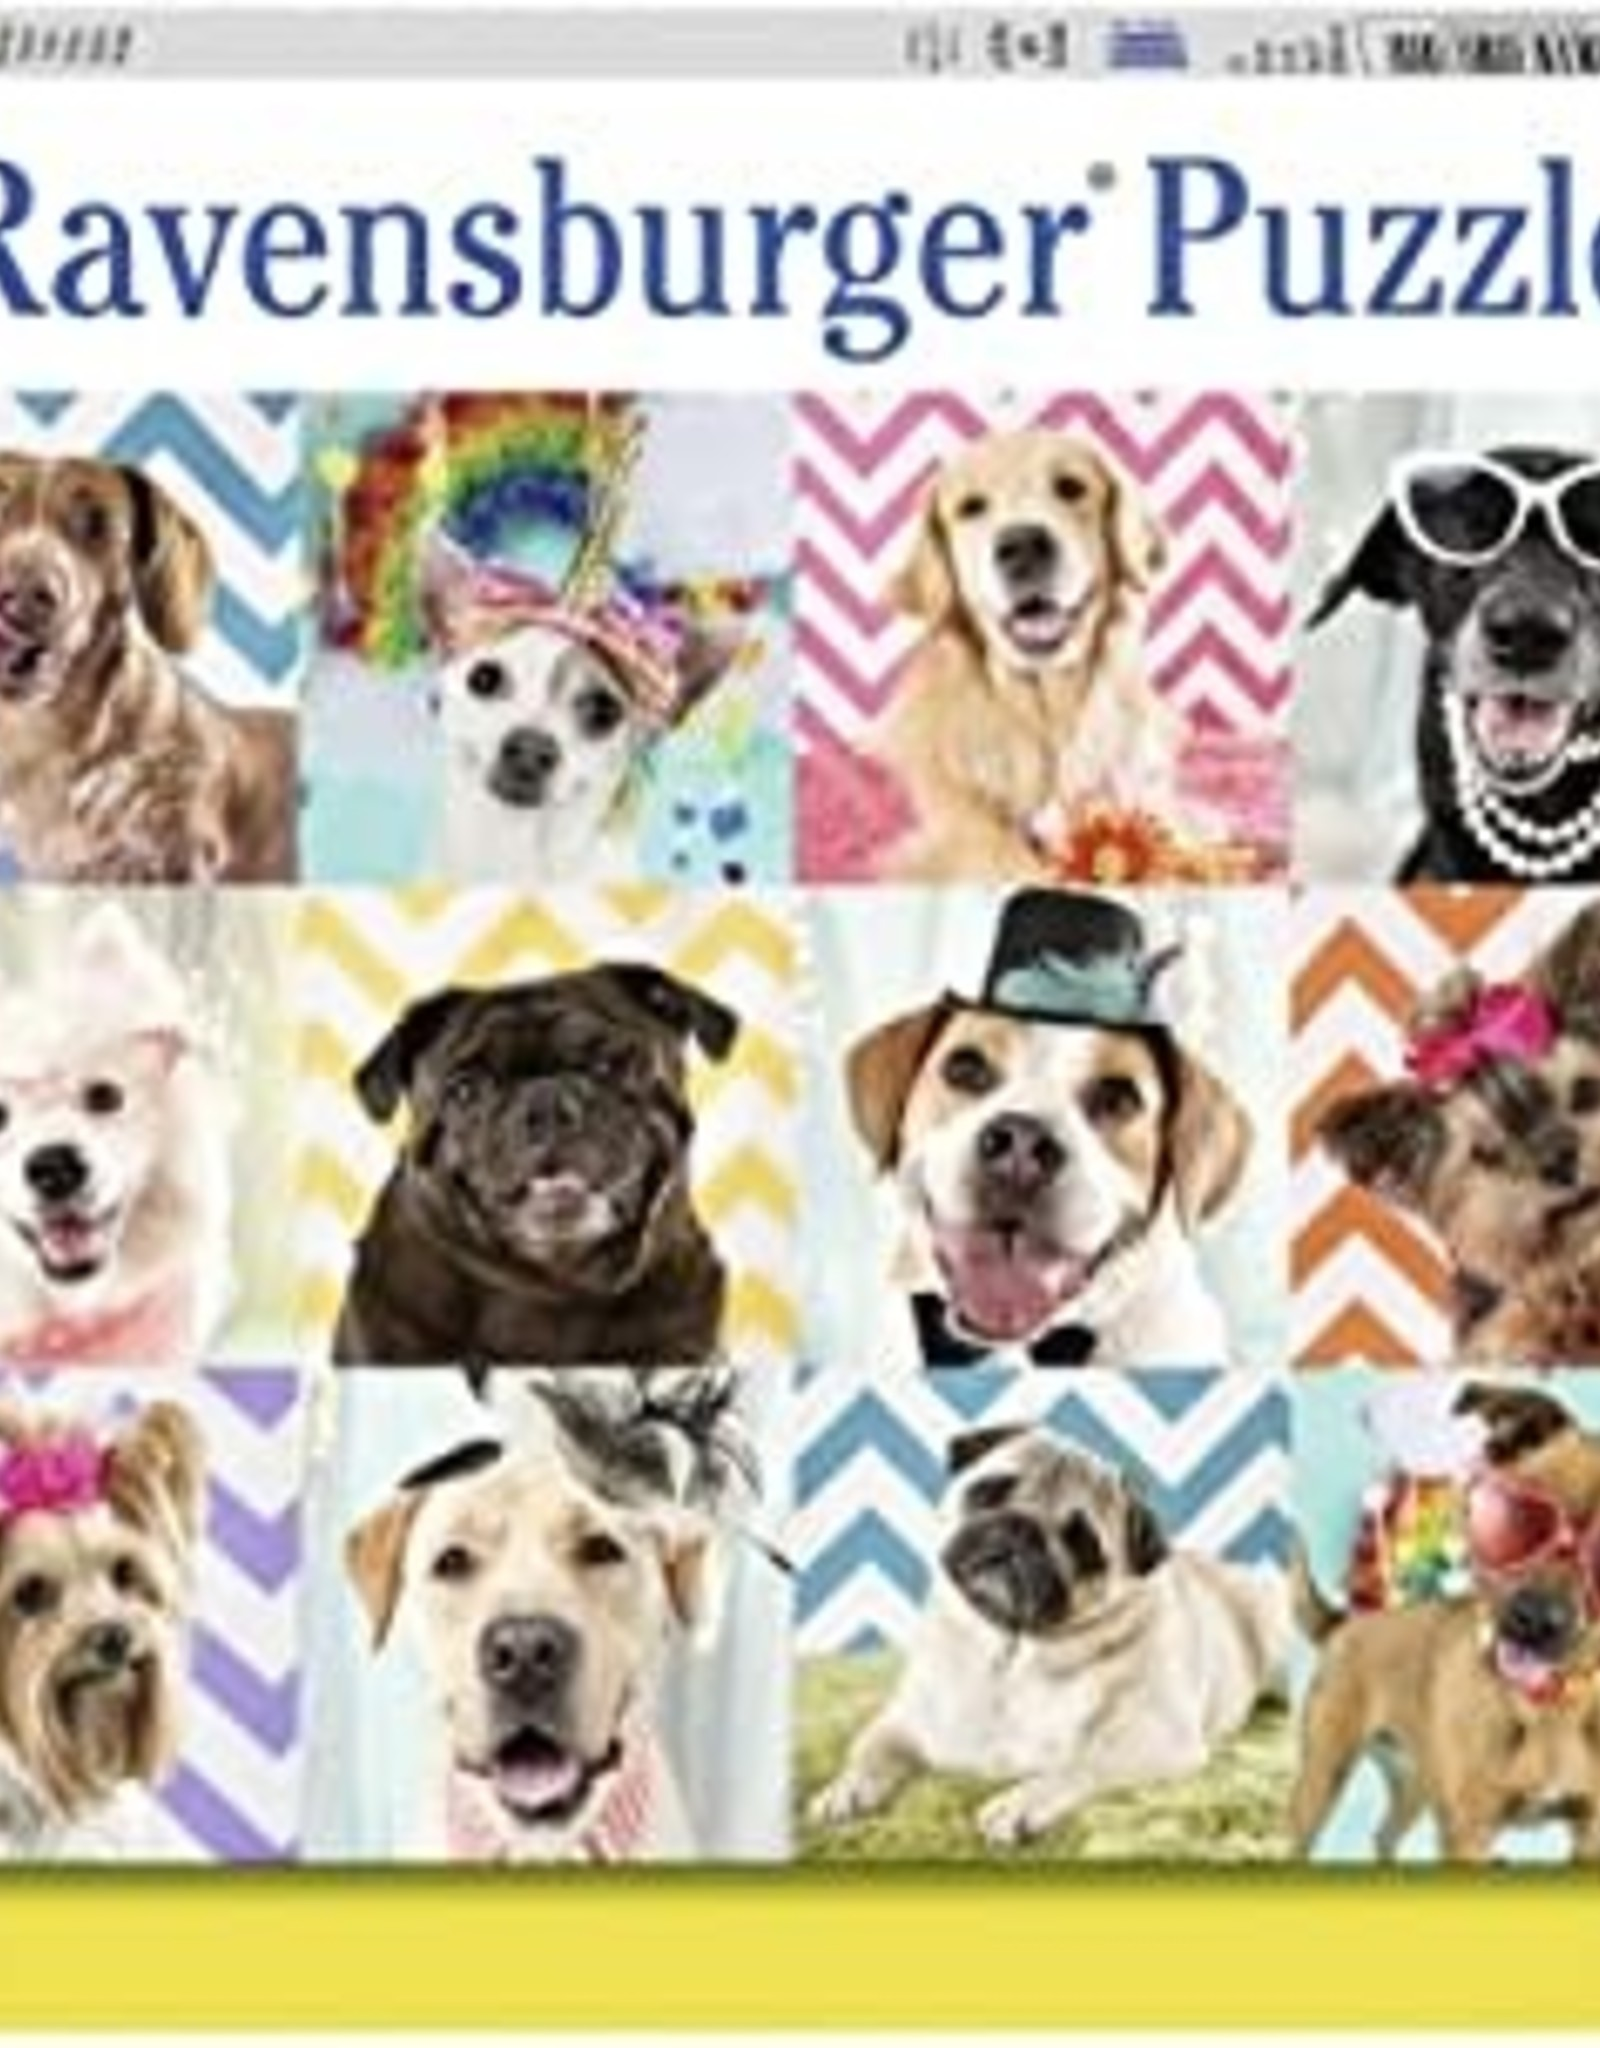 Ravensburger 100pc XXL puzzle Doggy Disguise